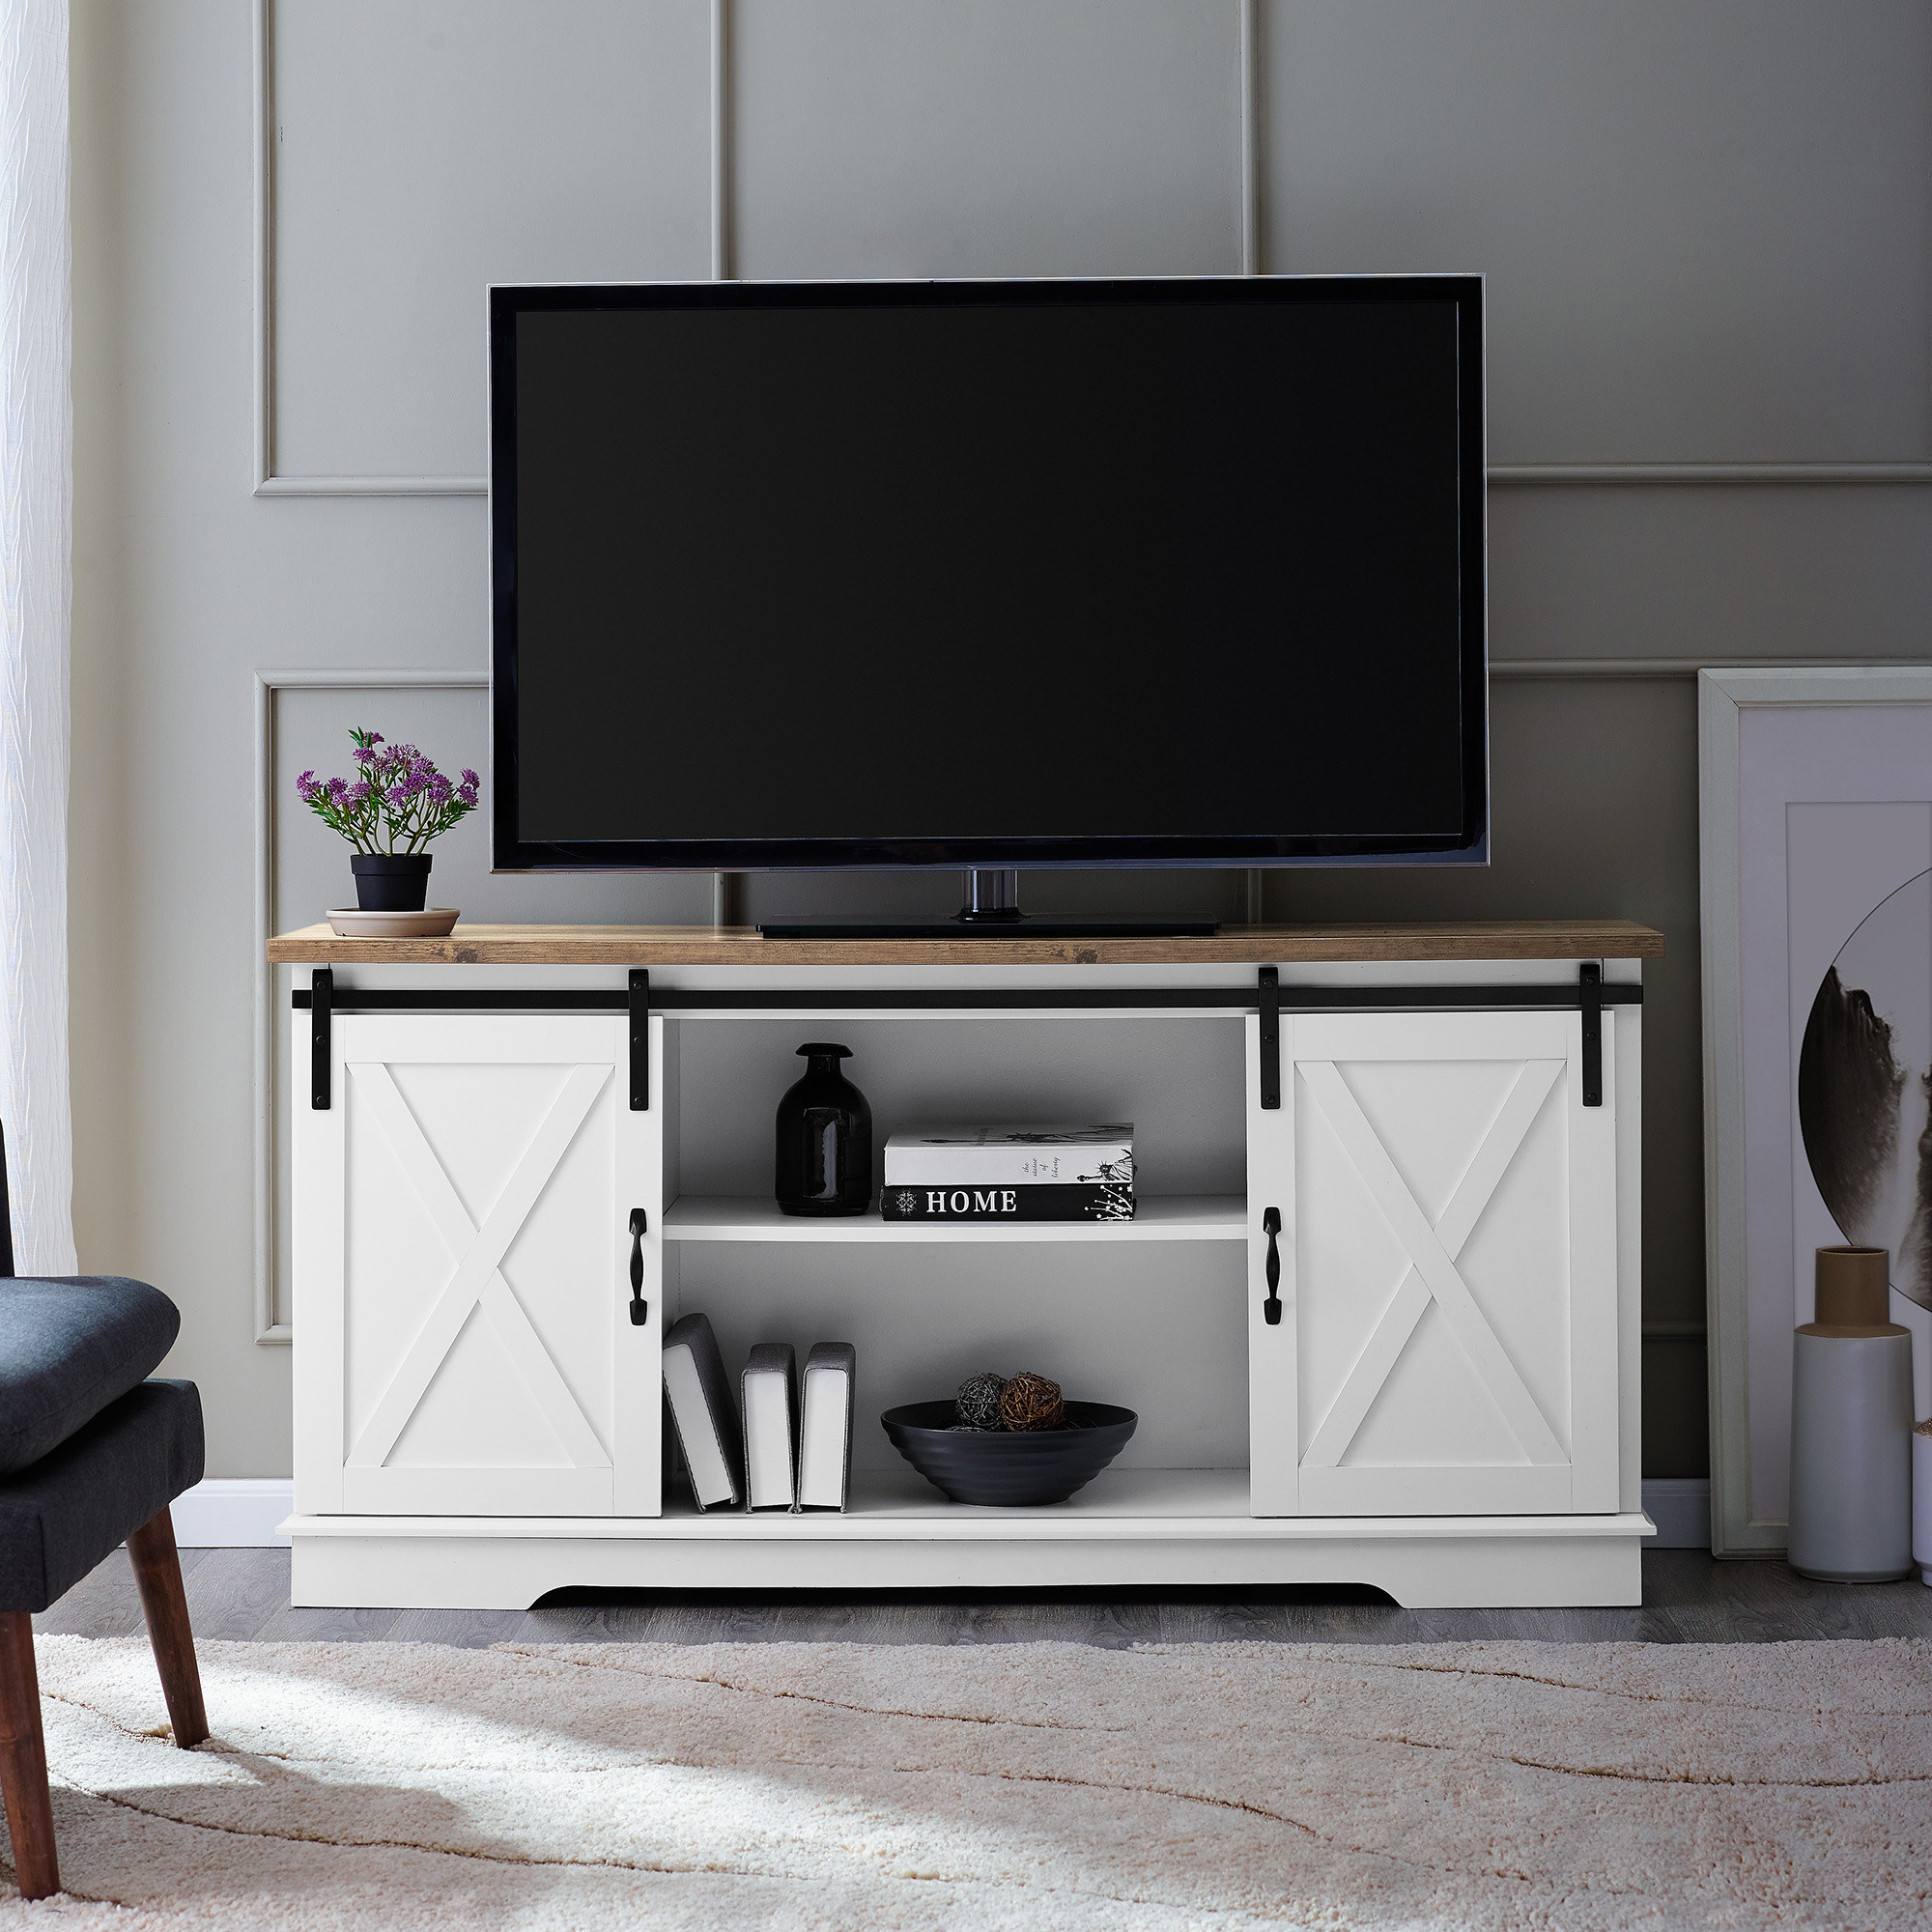 The white TV stand with a large TV on top